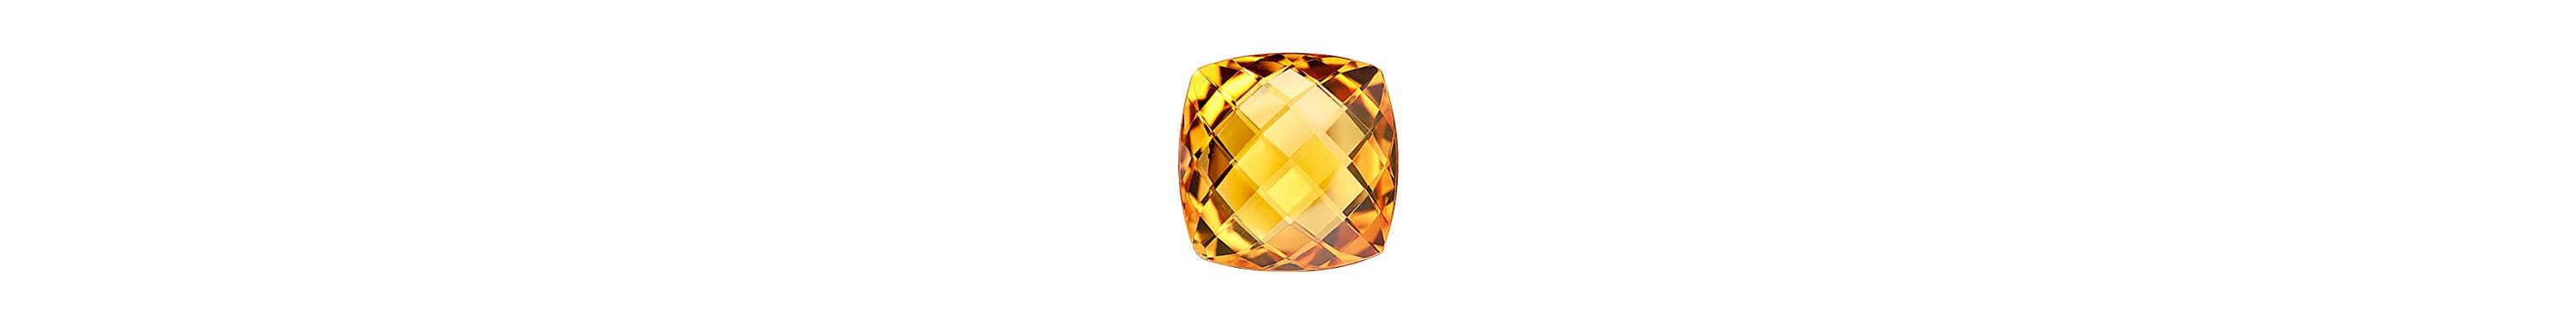 A color photograph shows a close-up shot of a faceted cushion-cut citrine on a white background.